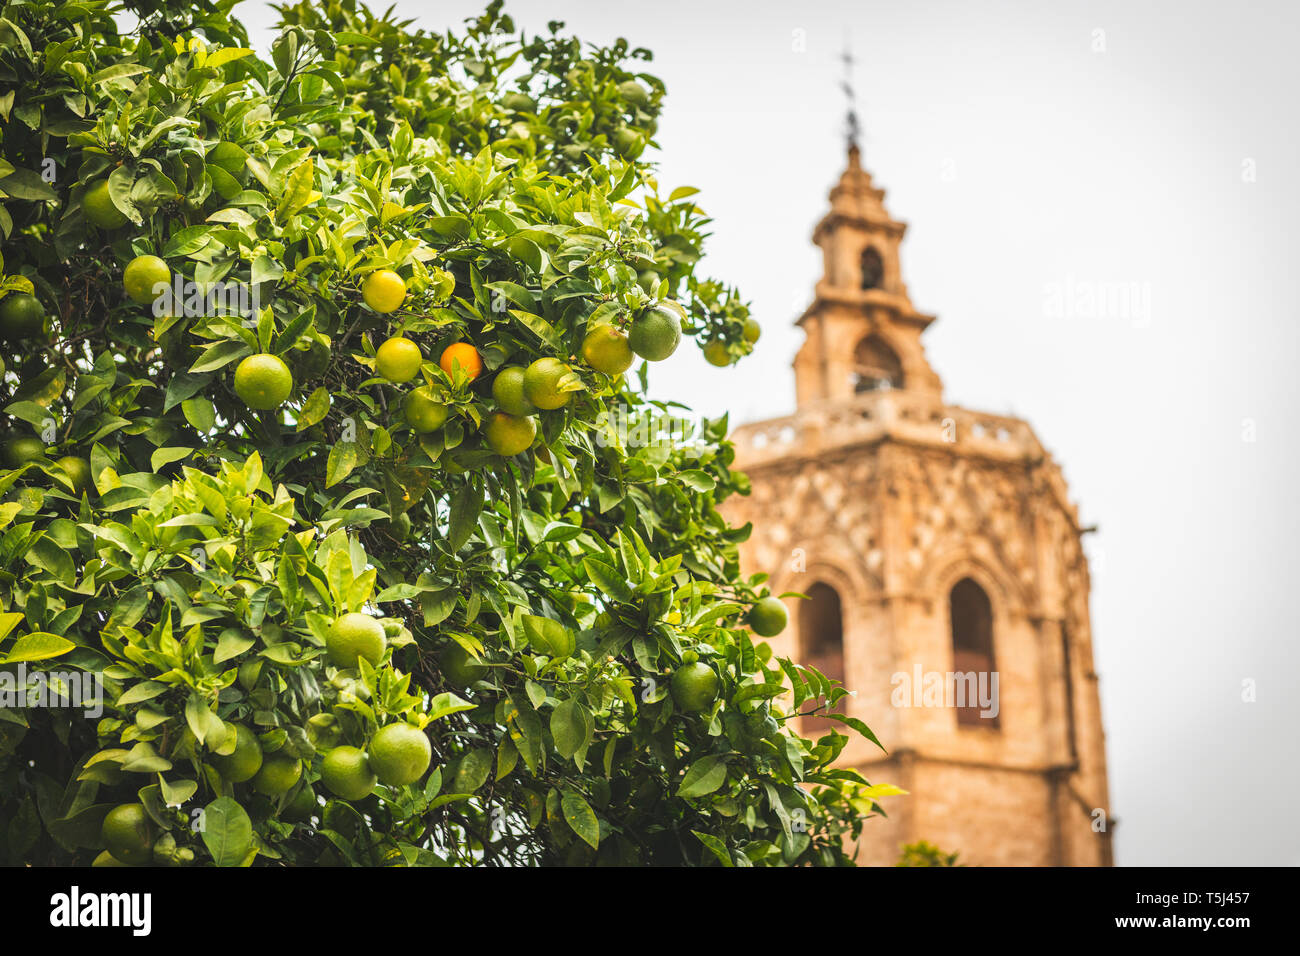 Spain, Valencia, view to El Micalet with orange tree in the foreground Stock Photo